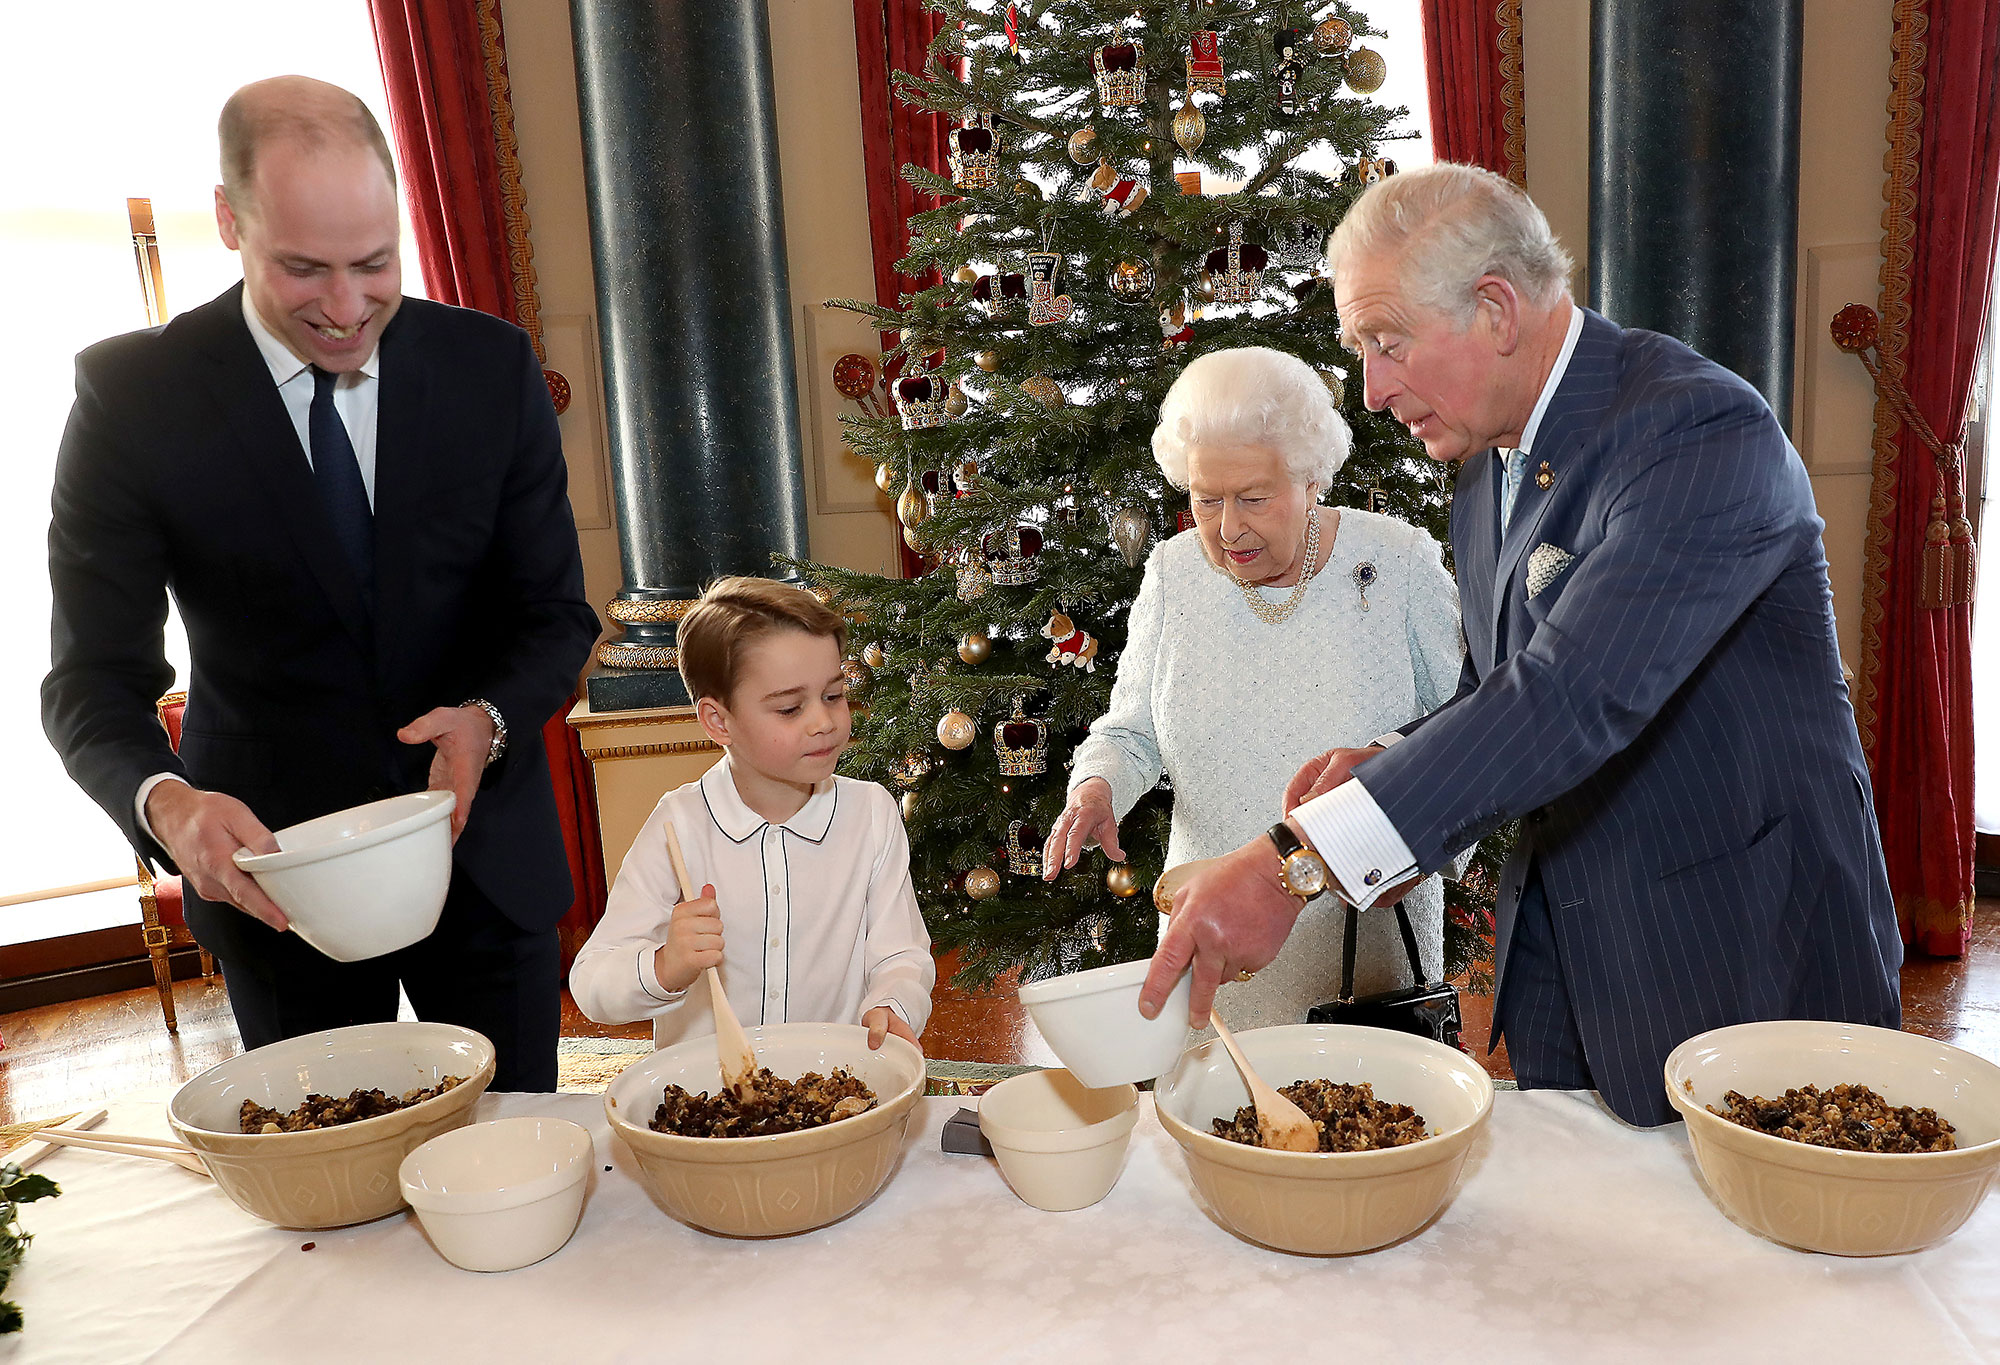 Elizabeth II, the Prince of Wales, the Duke of Cambridge and Prince George